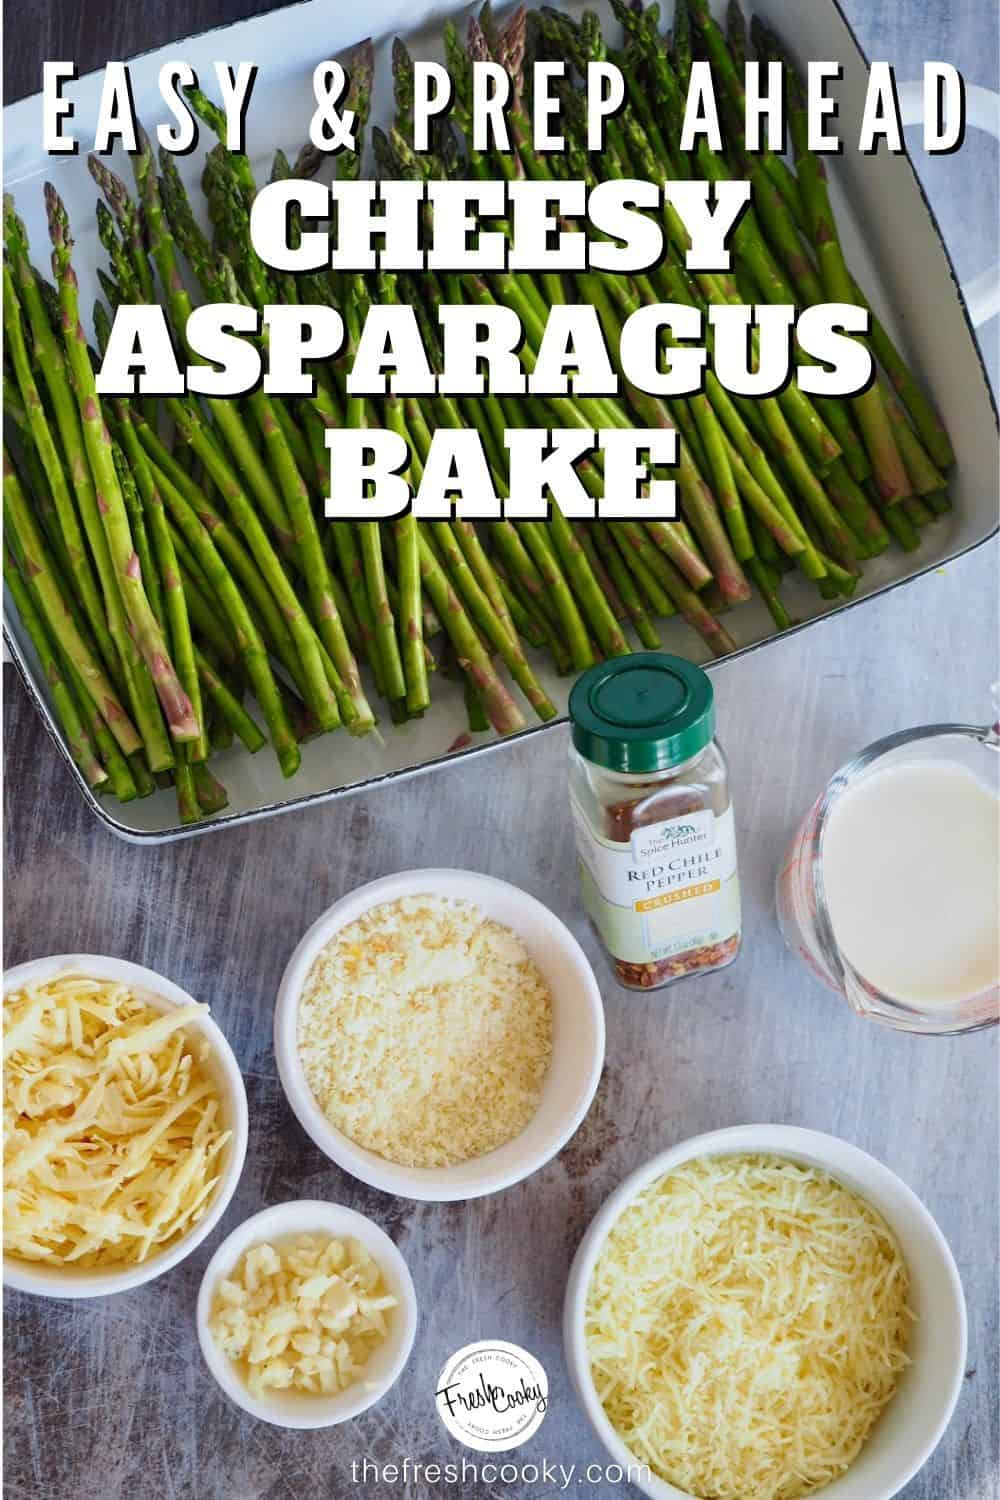 This recipe for roasted  garlic cheesy asparagus bake is an amazing vegetable side dish from The Fresh Cooky. No fail, 5 minute prep, best holiday side. Gluten Free and Keto. #thefreshcooky #holidaysides #bakedasparagus via @thefreshcooky